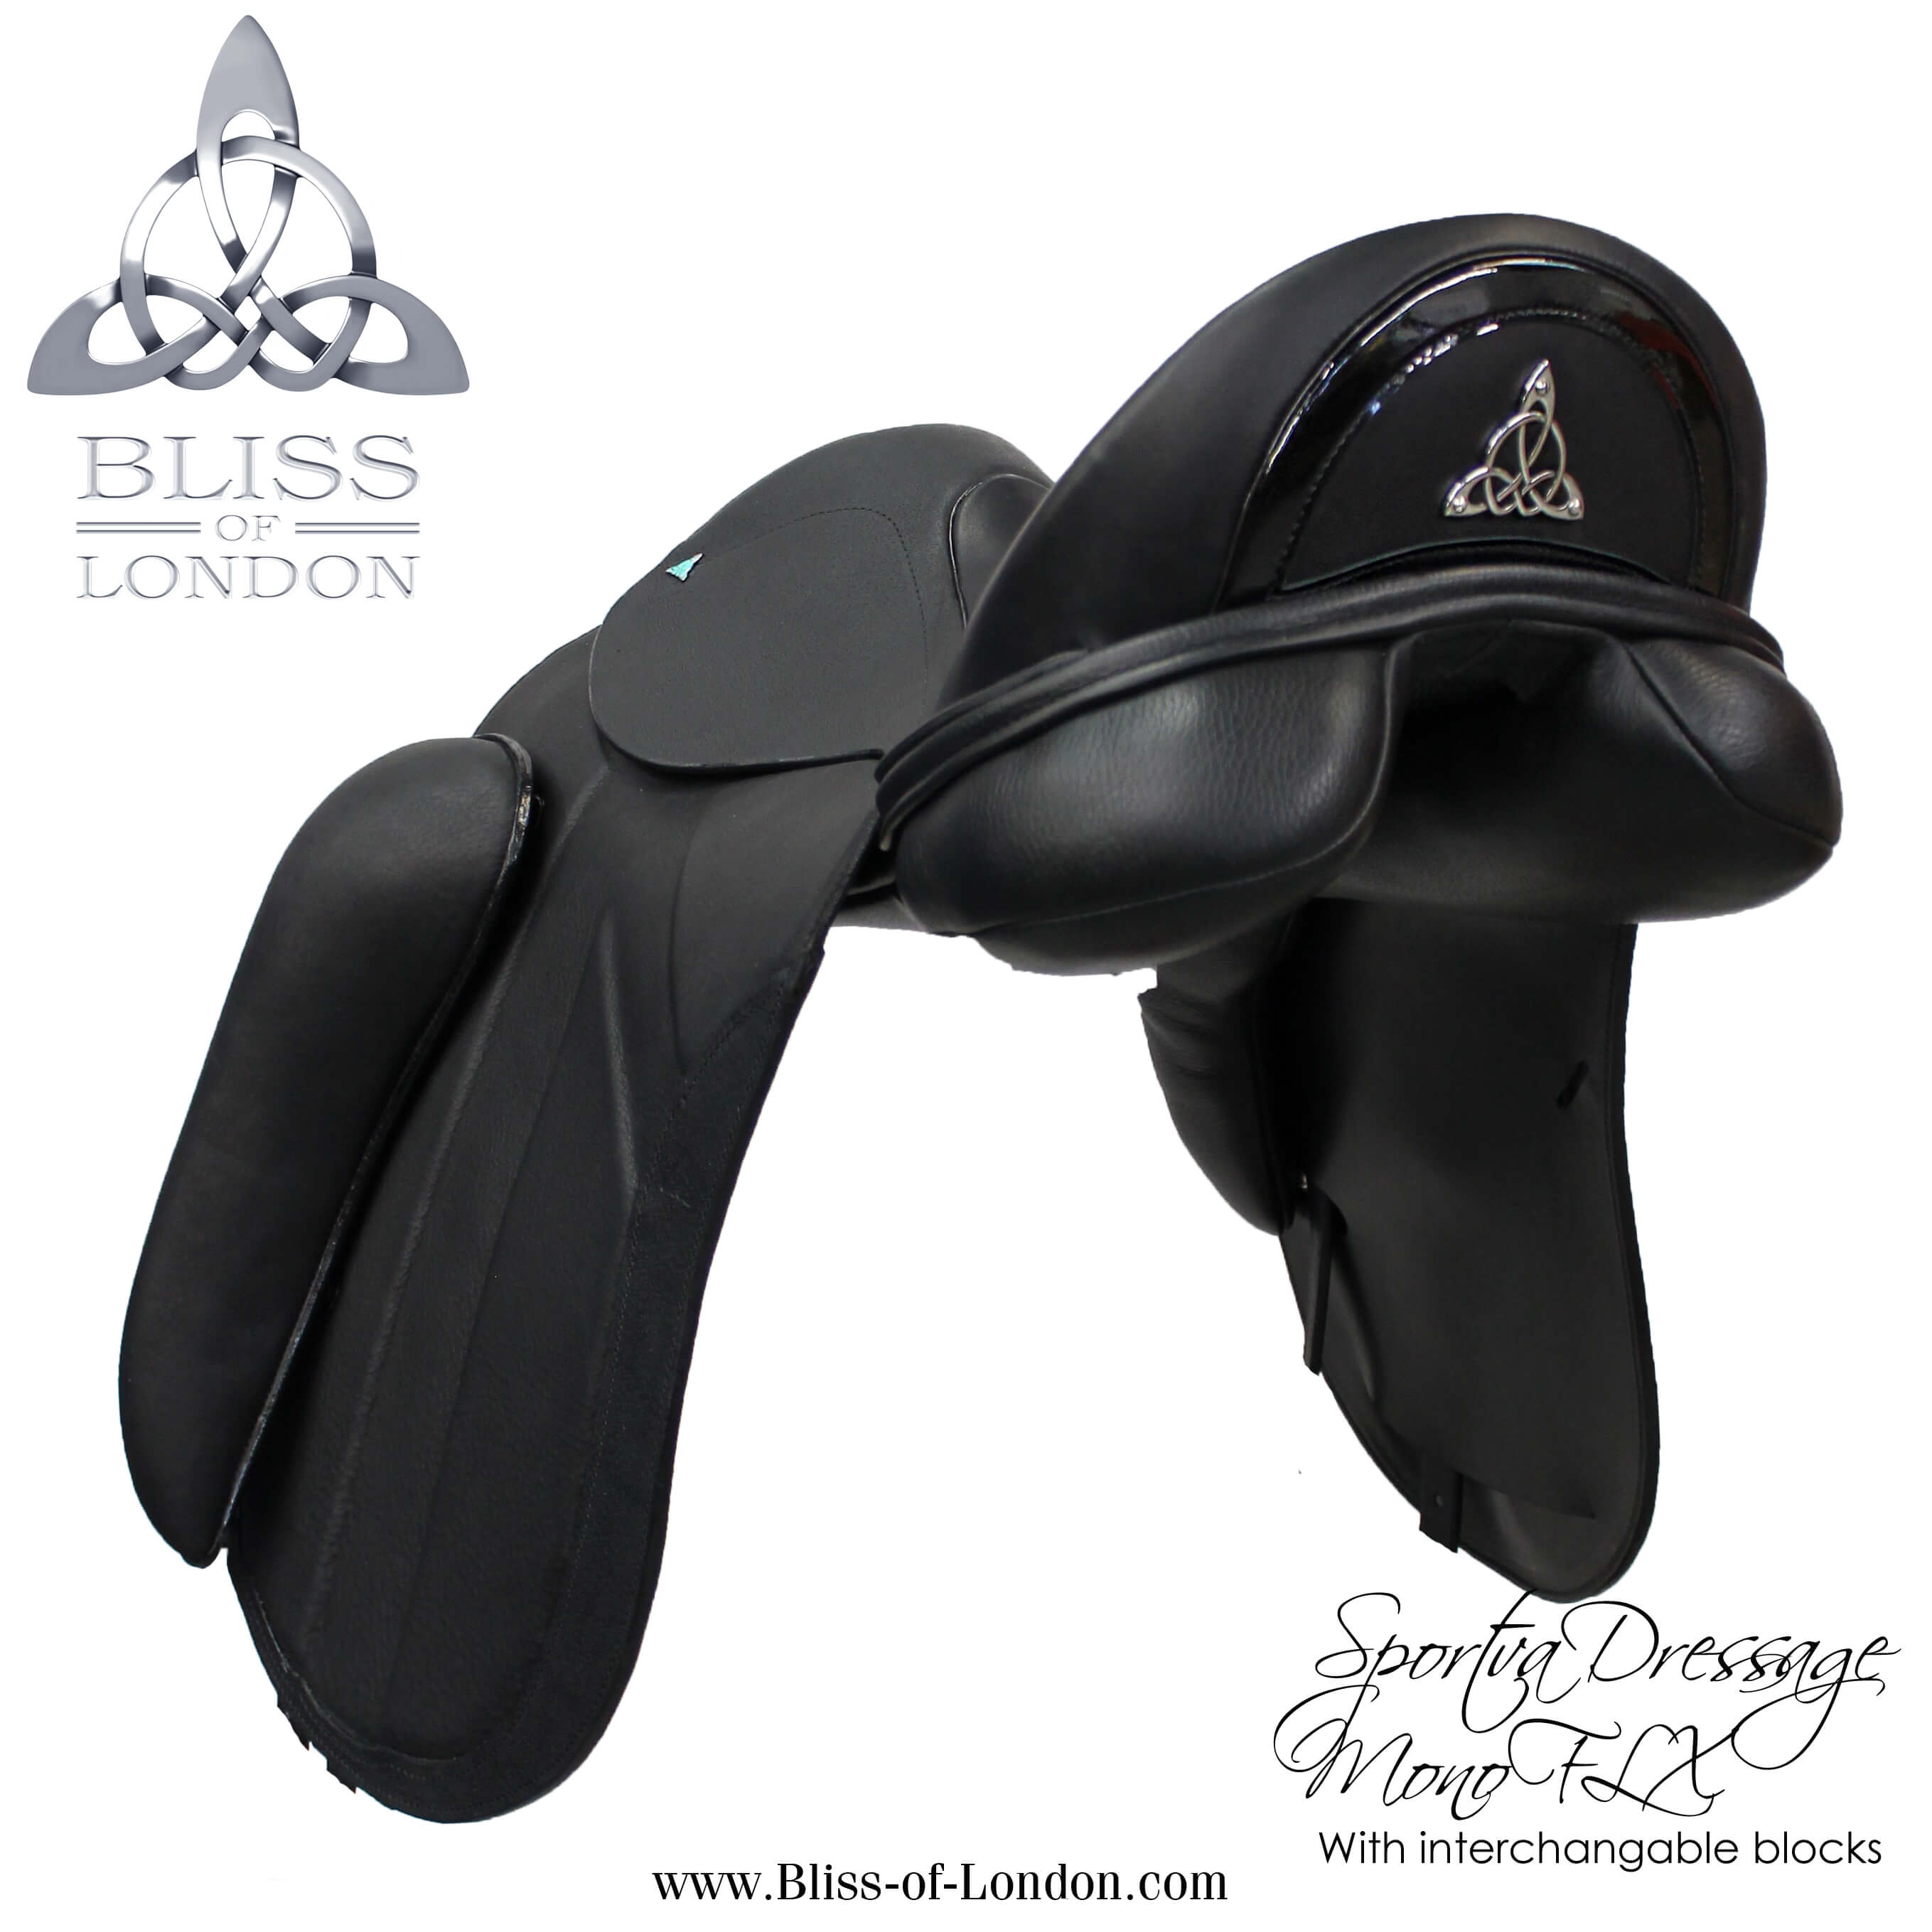 1A Product page 1 - Sportiva Dressage FLX 34